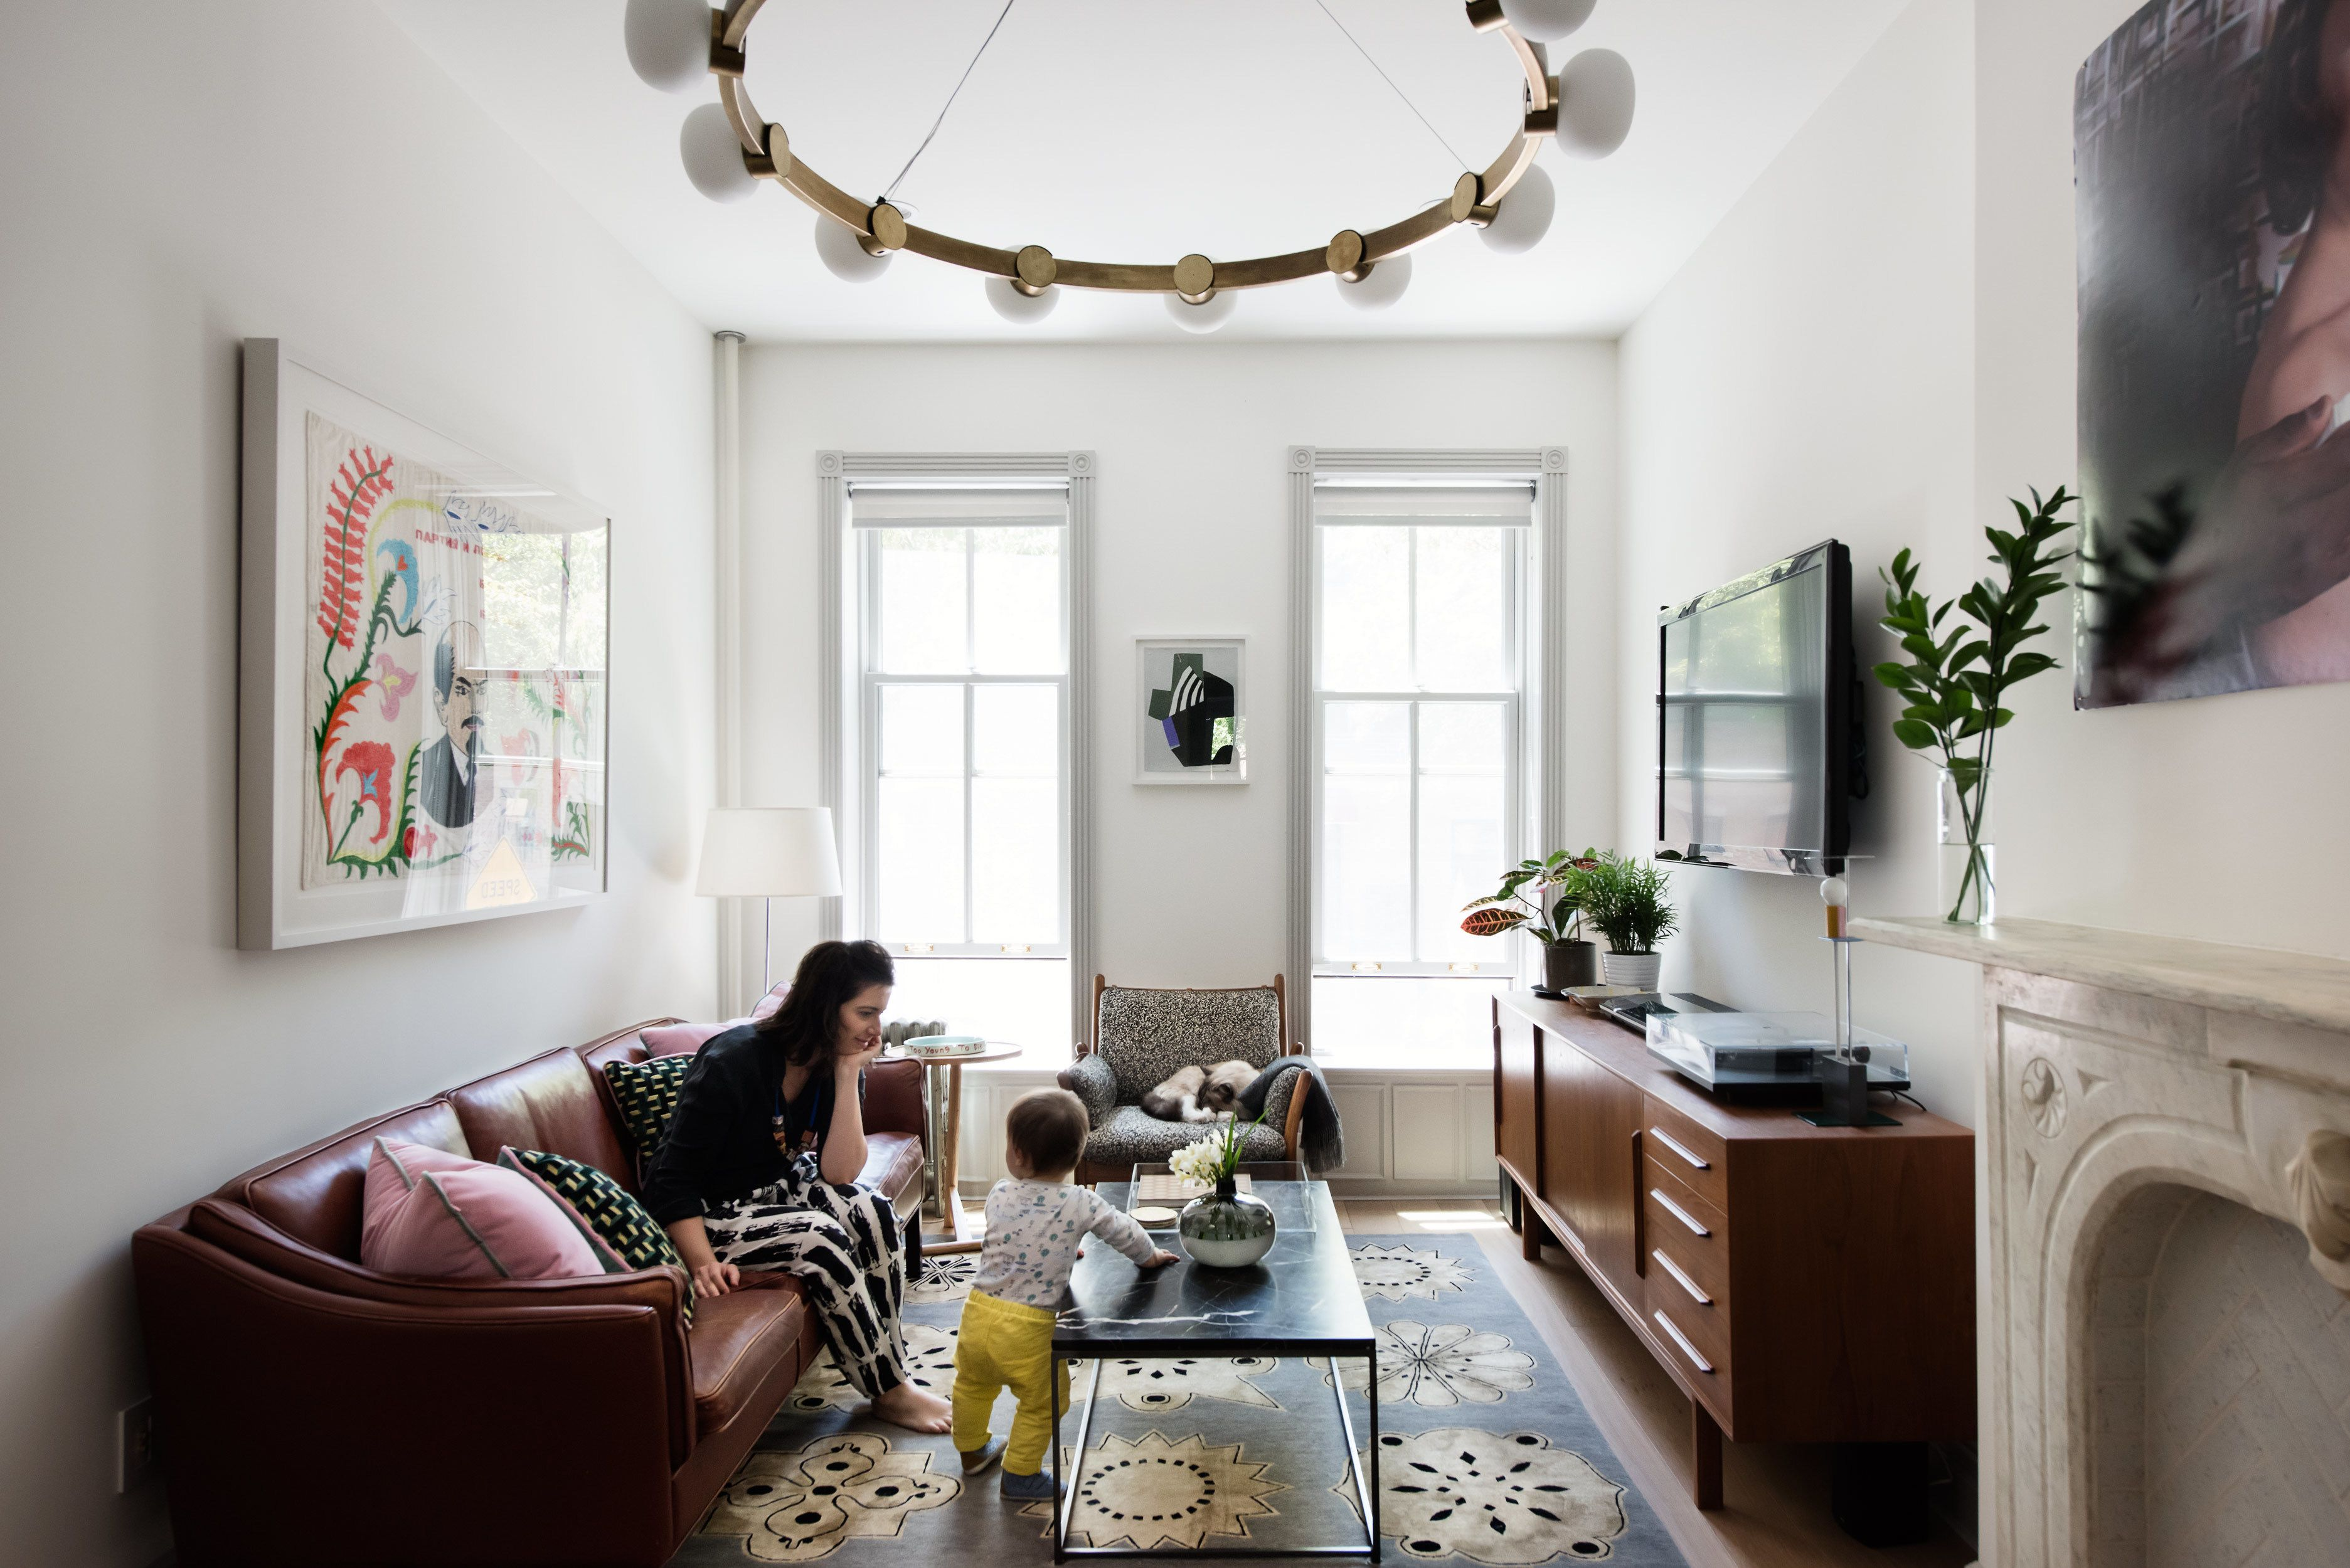 In the Moment from Modern Becomes Eclectic in This Renovated ...